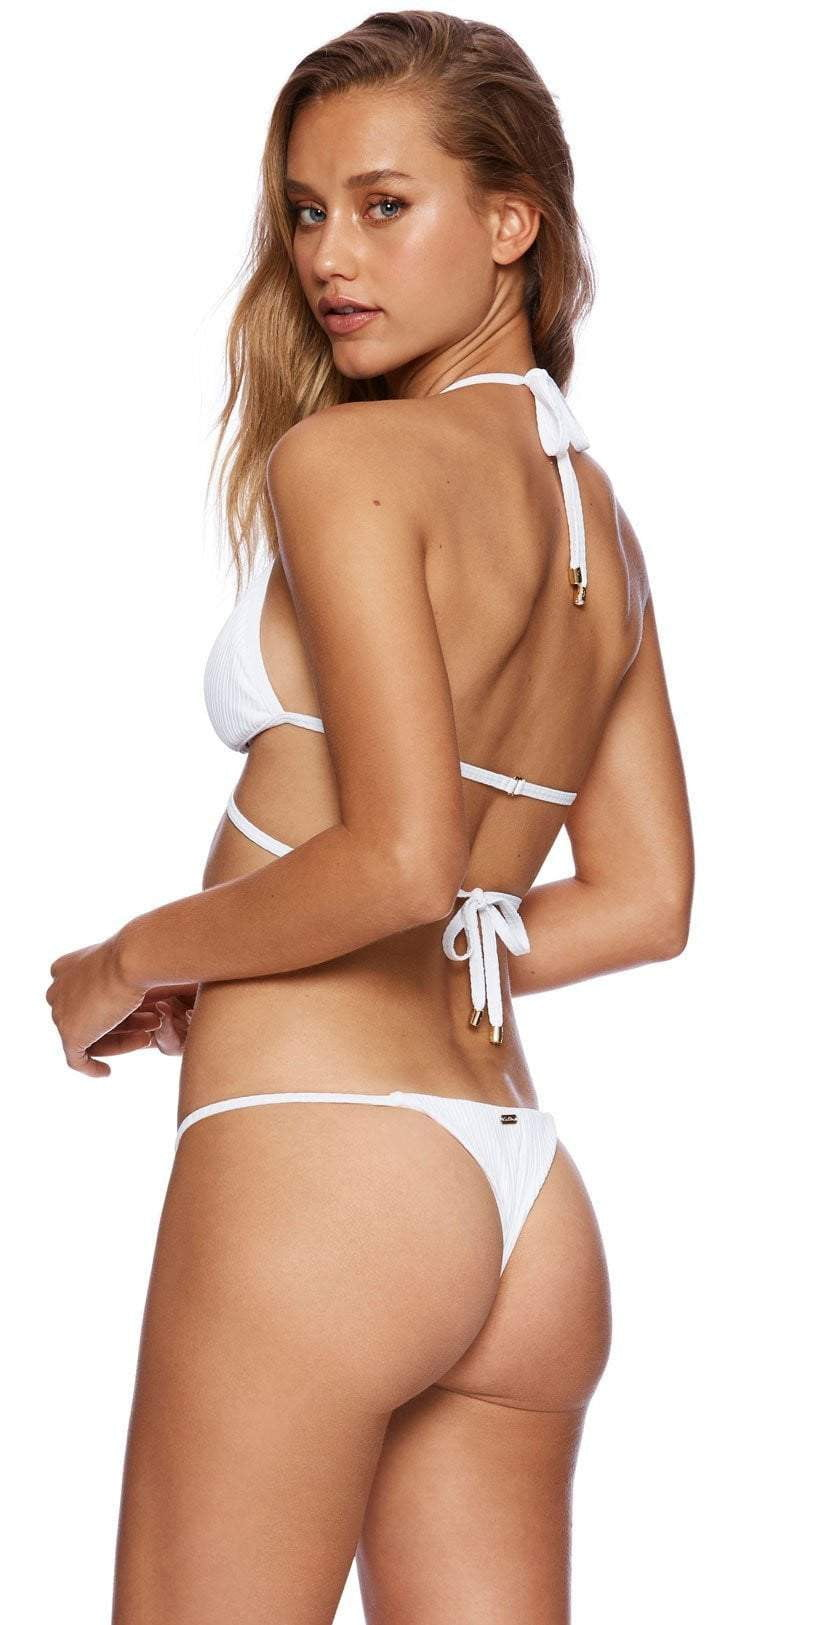 Beach Bunny Californiacation Renegade Wrap Bikini Top In White B19106T2 WHT: